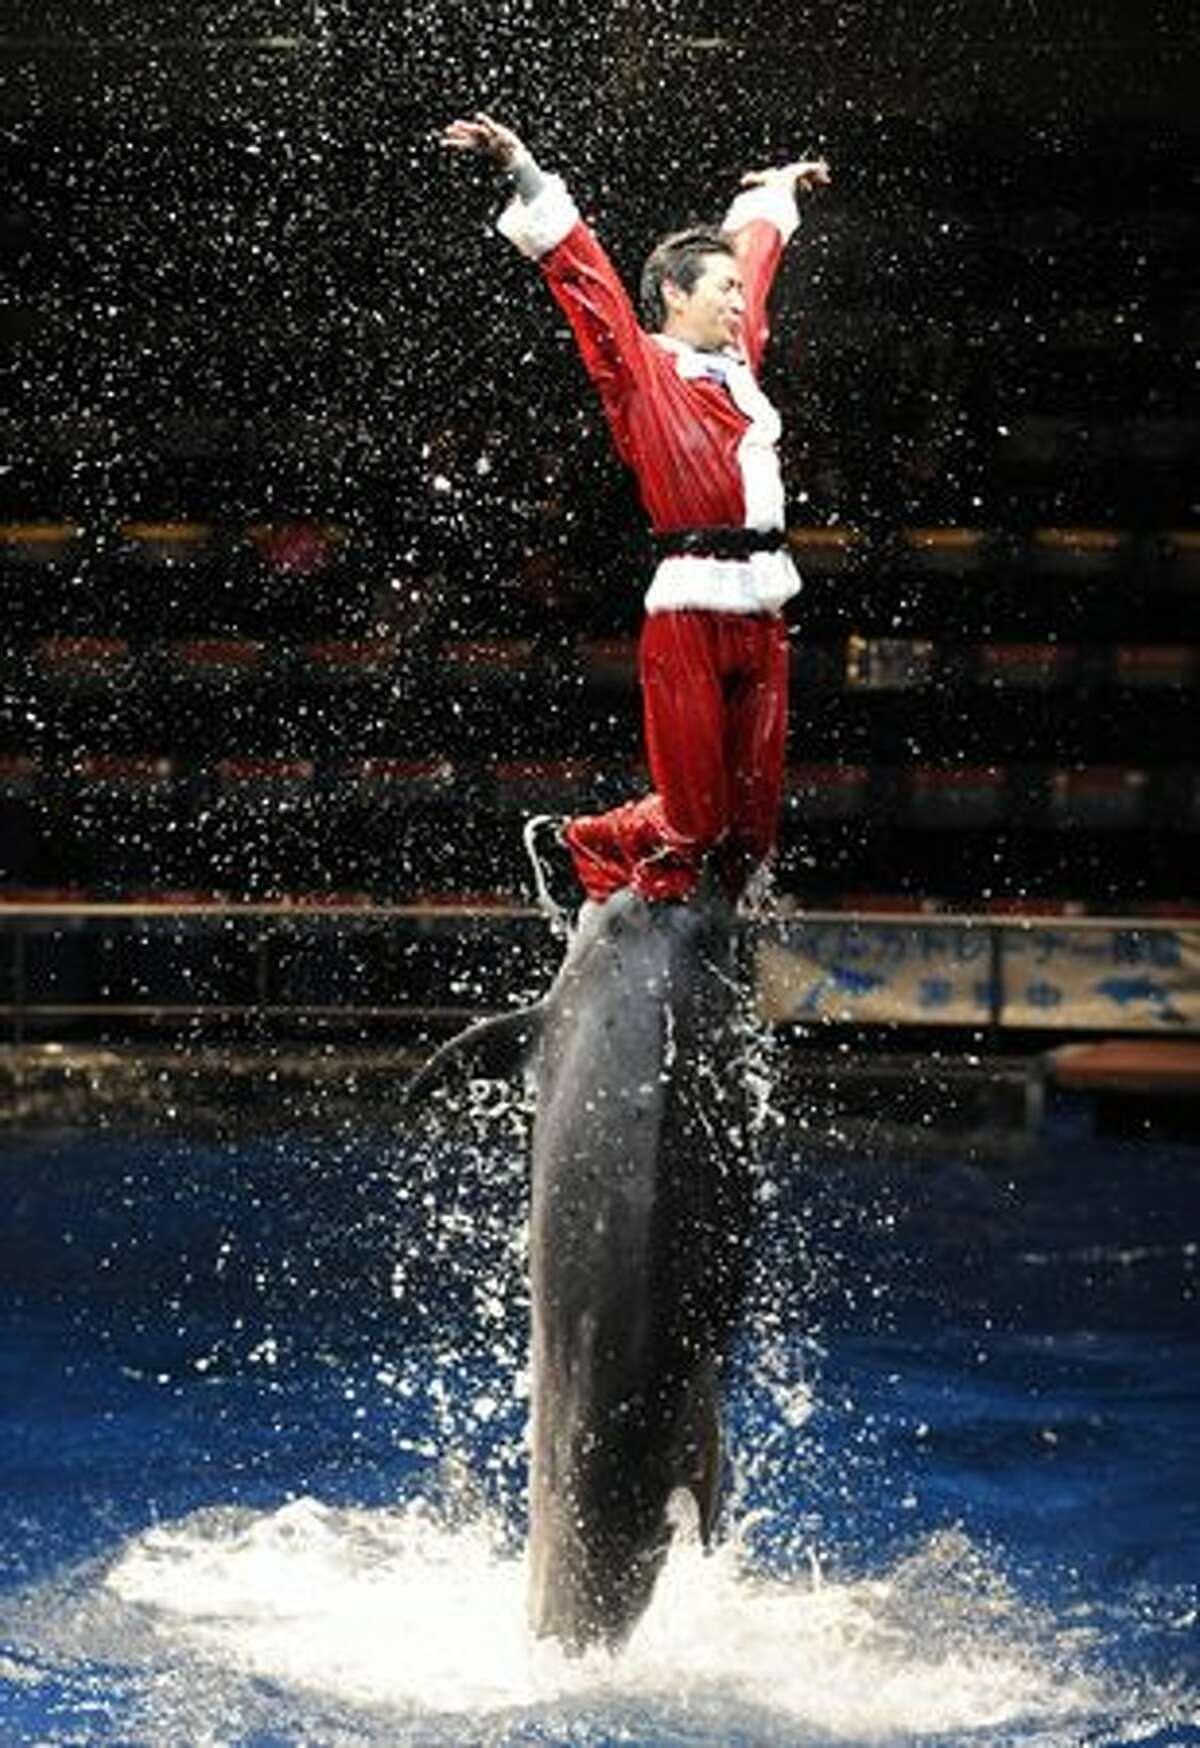 An aquarium trainer in a Santa Claus costume is pushed out of the water by bottle-nose dolphins during a show at the Aqua Stadium aquarium at the Shinagawa Prince Hotel in Tokyo on Monday. Visitors can view the Christmas special show, which will be held through to Christmas Day.